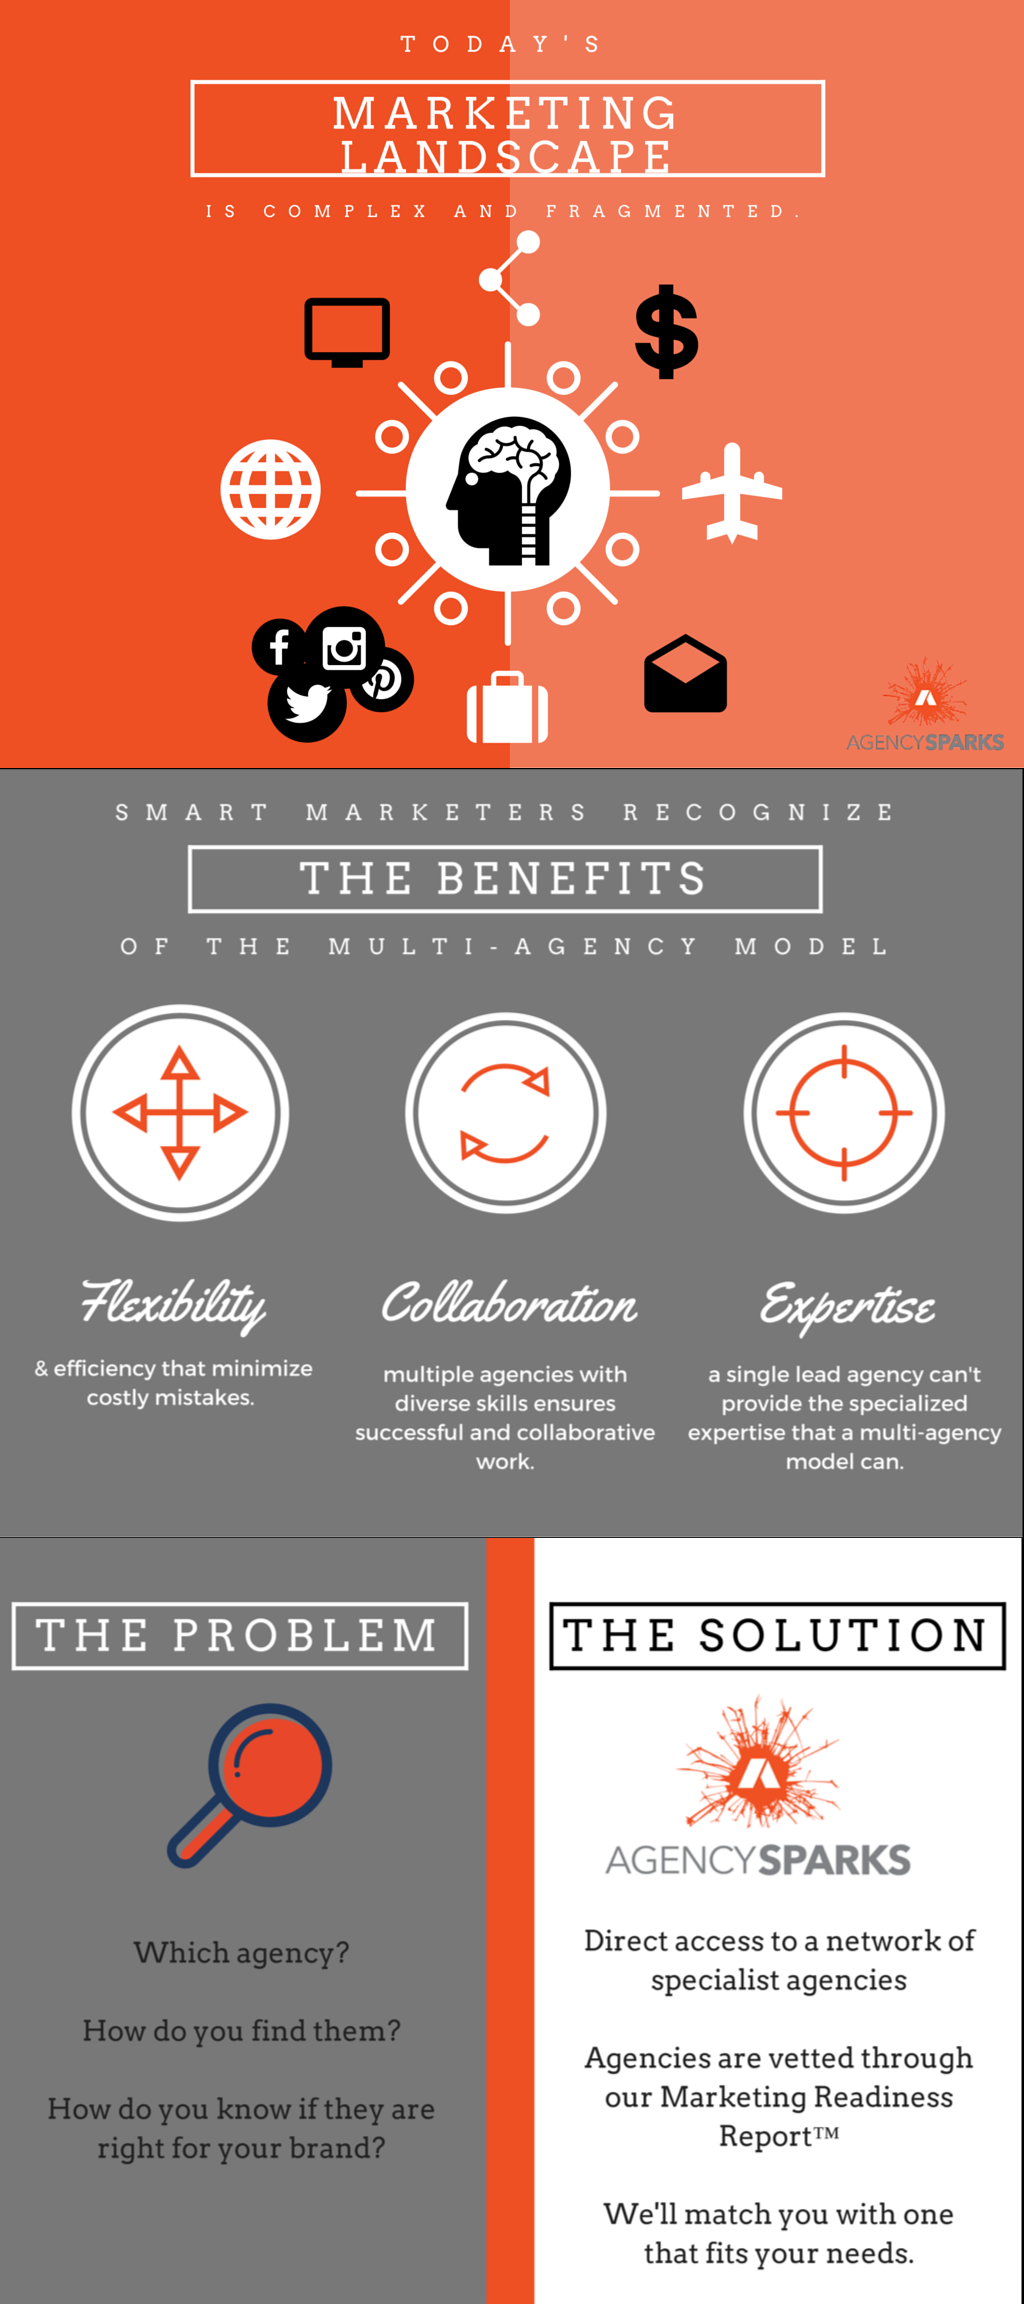 Benefits of specialist marketing agencies infographic - AgencySparks  The number of marketing and advertising agencies has skyrocketed in recent years, making today's marketing landscape complex and fragmented. Smart marketers recognize the benefits of the multi-agency model; flexibility, collaboration, and expertise. Specialized agencies are more efficient and have a diverse skill set, but it how do you know which is right for your brand? Through out network of vetted agencies,AgencySparks helps you make and find the right connection and perfect fit for your needs.